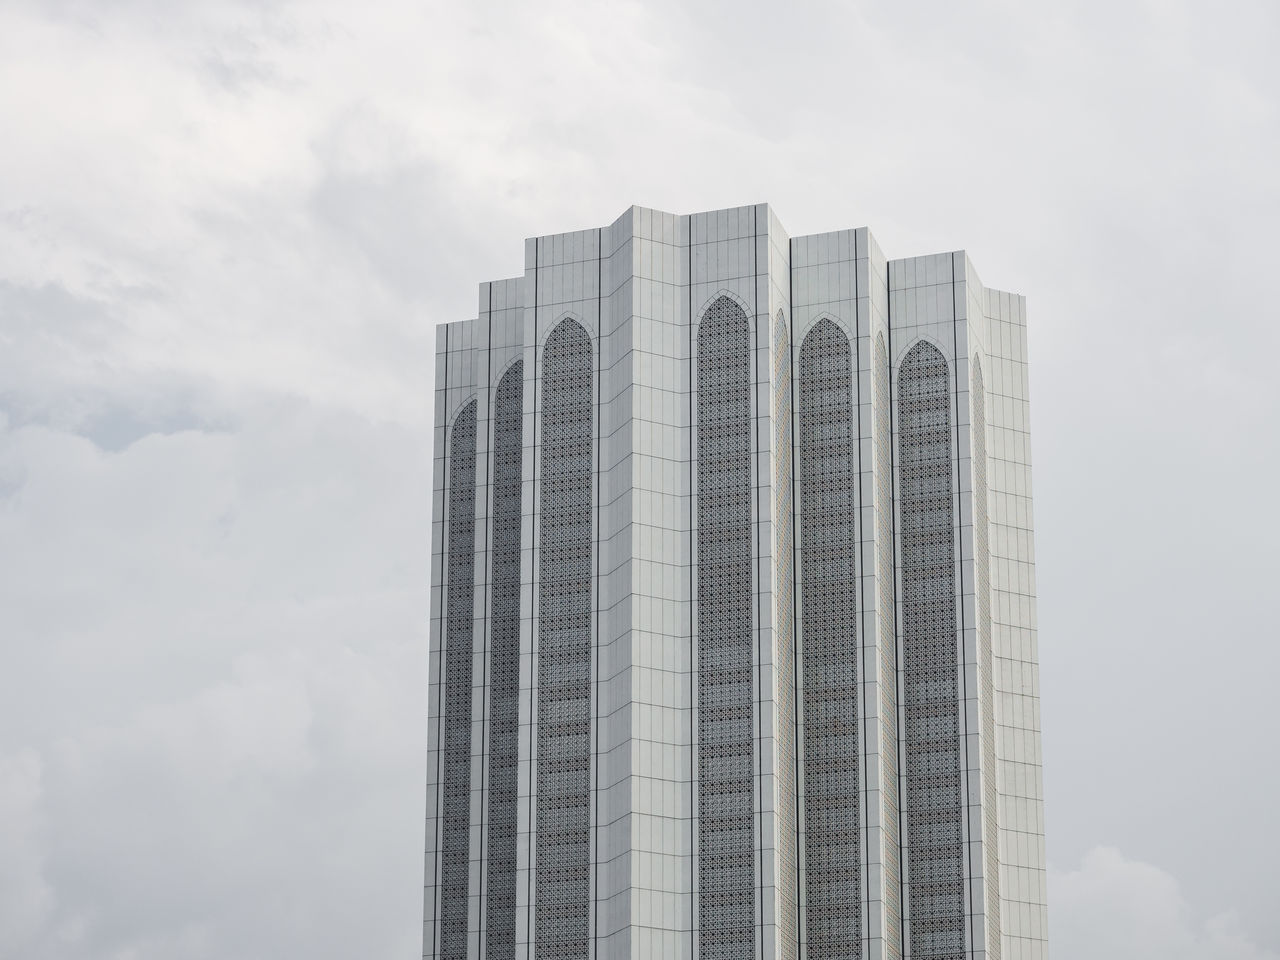 built structure, architecture, building exterior, sky, cloud - sky, office building exterior, tall - high, building, no people, skyscraper, modern, day, low angle view, city, nature, tower, office, outdoors, white color